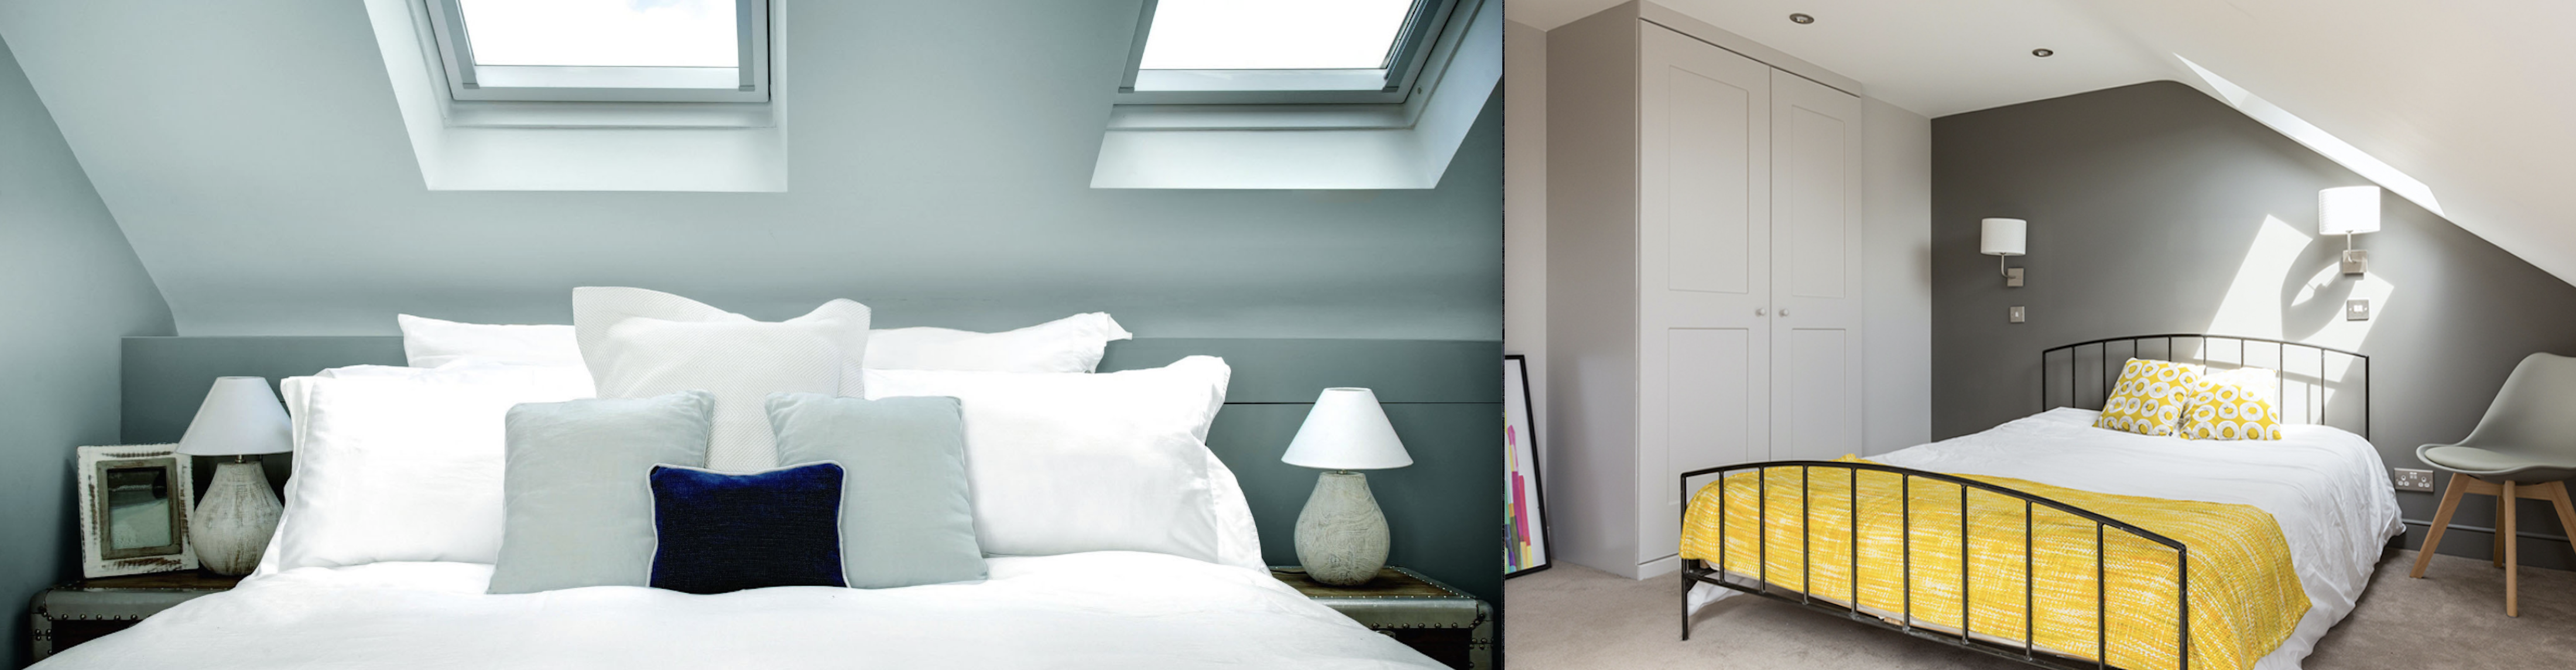 Beautiful Dormer loft conversion in Dolphinholme, creating a new master bedroom with private bathroom, walk in wardrobe and stunning new oak staircase with Velux polyurethane SK06 GPU windows.